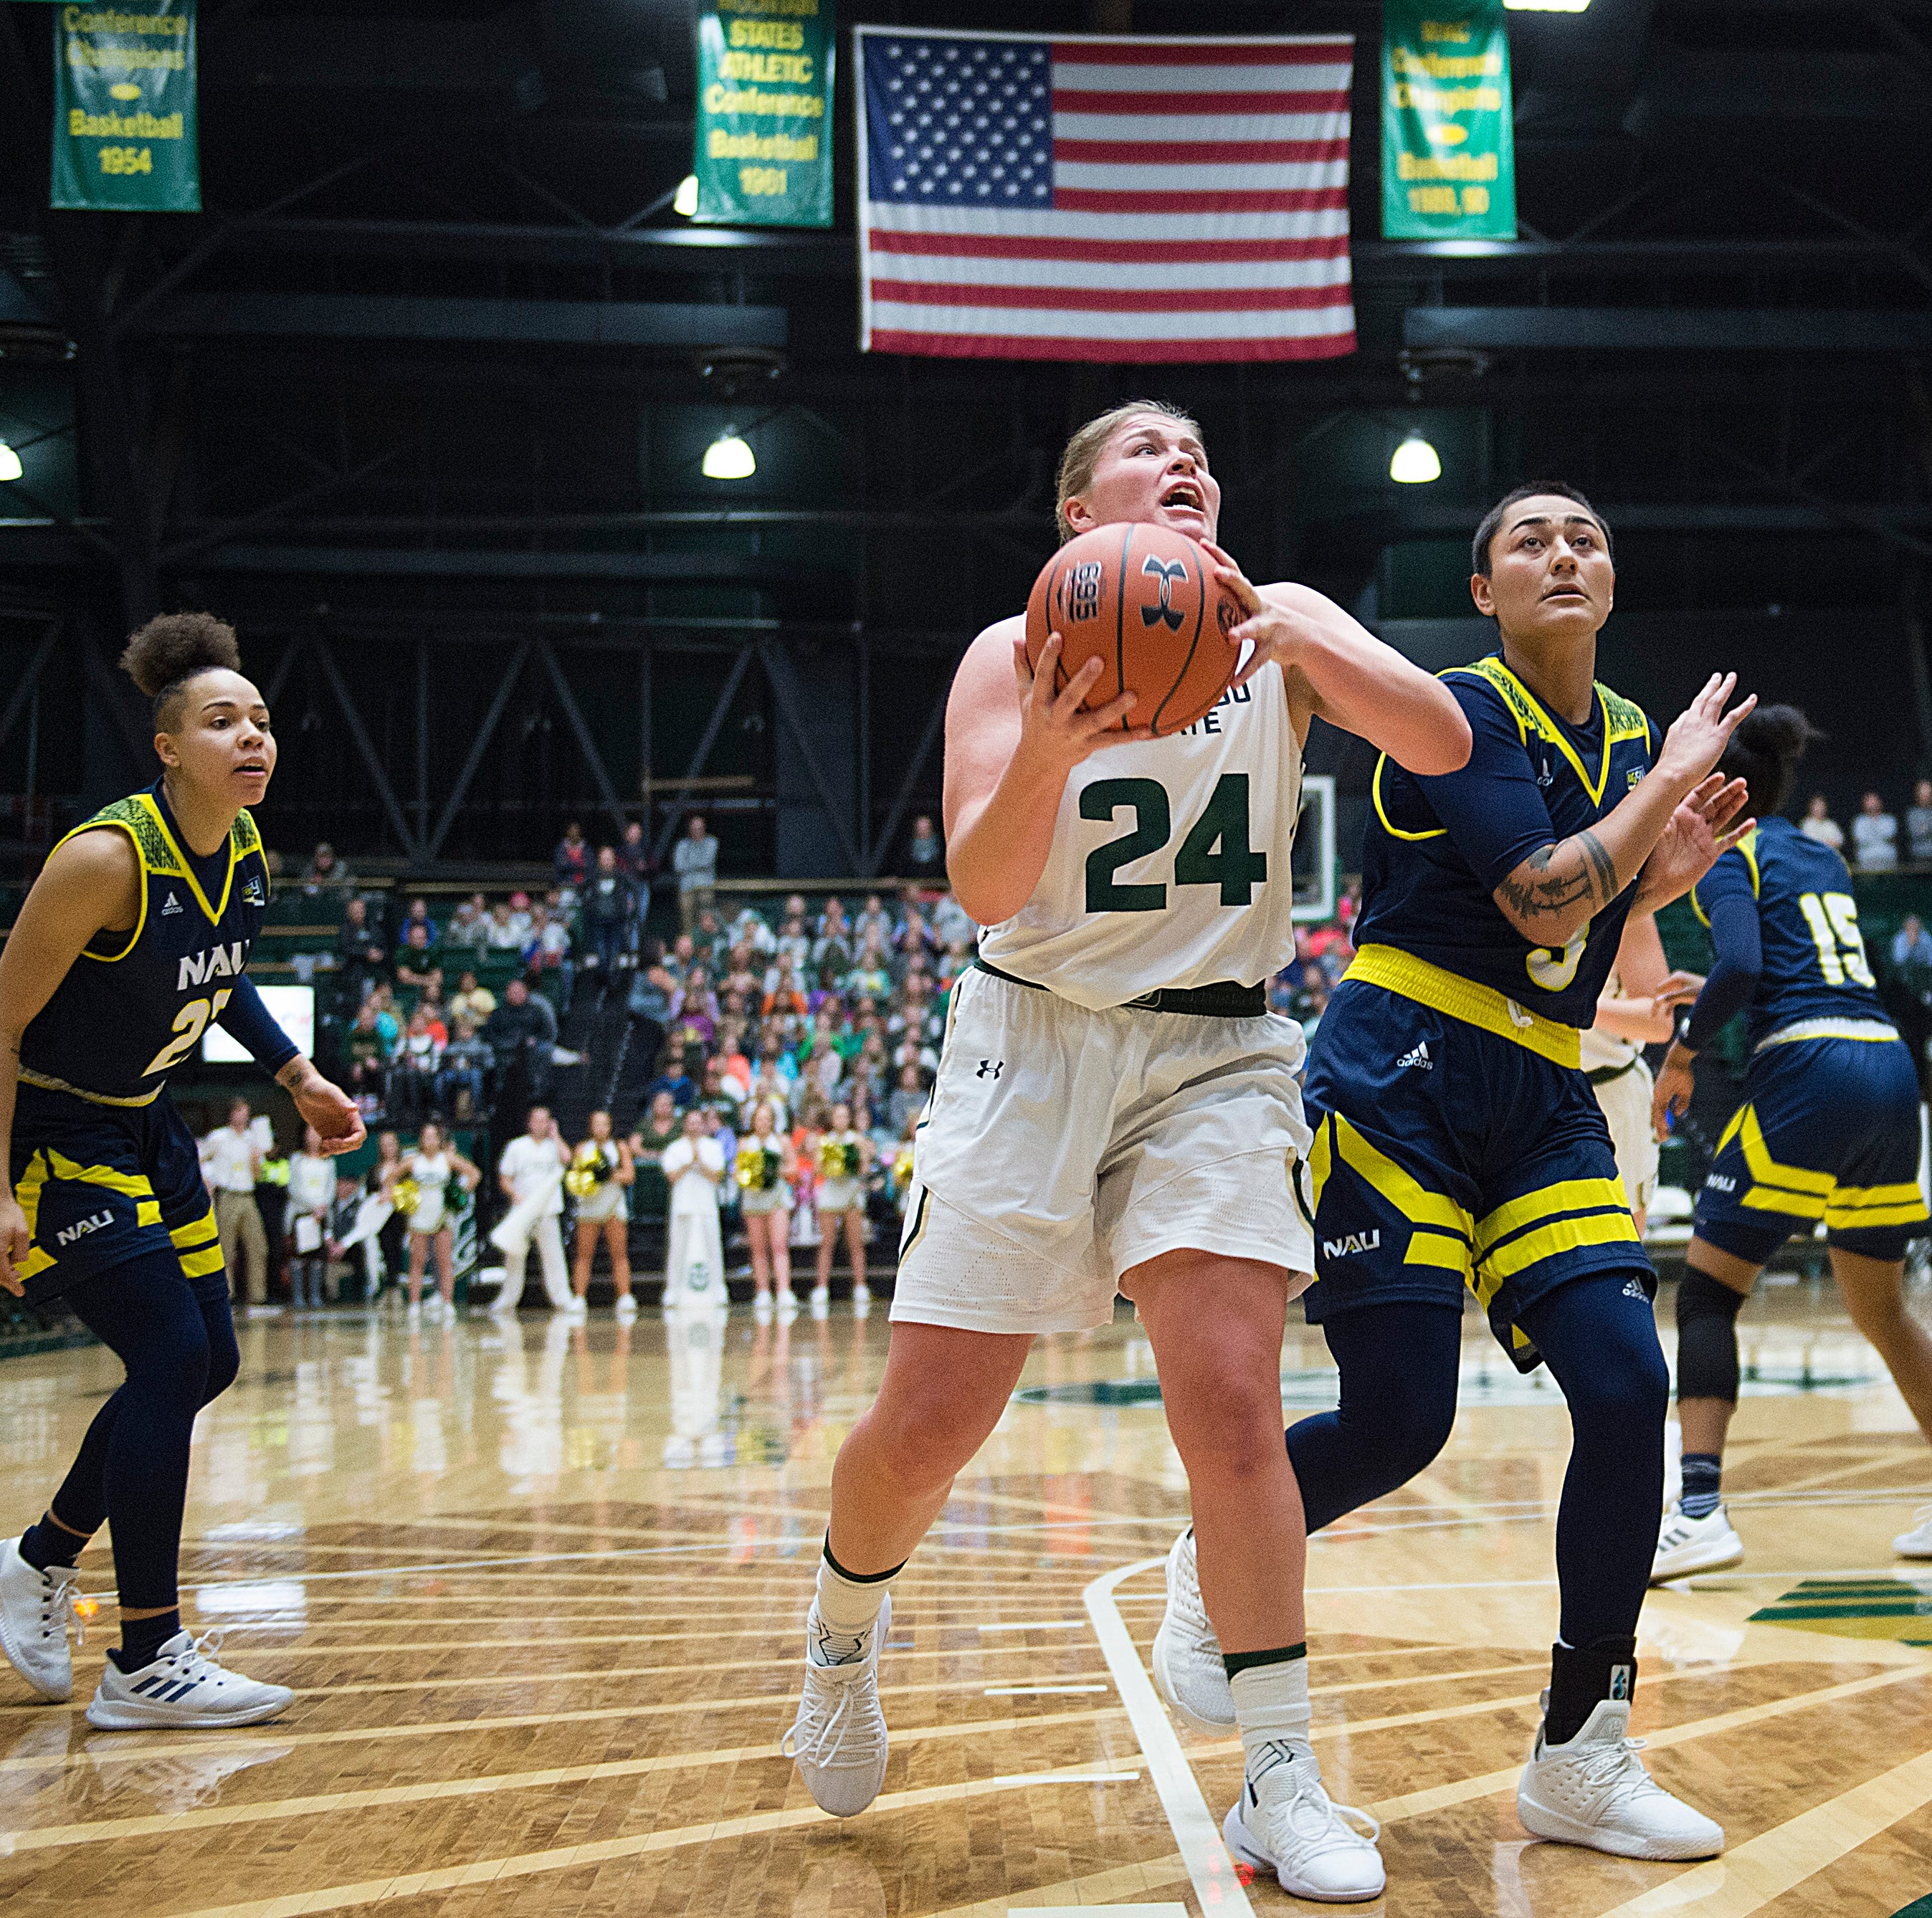 Colorado State University women's basketball team falls short at BYU